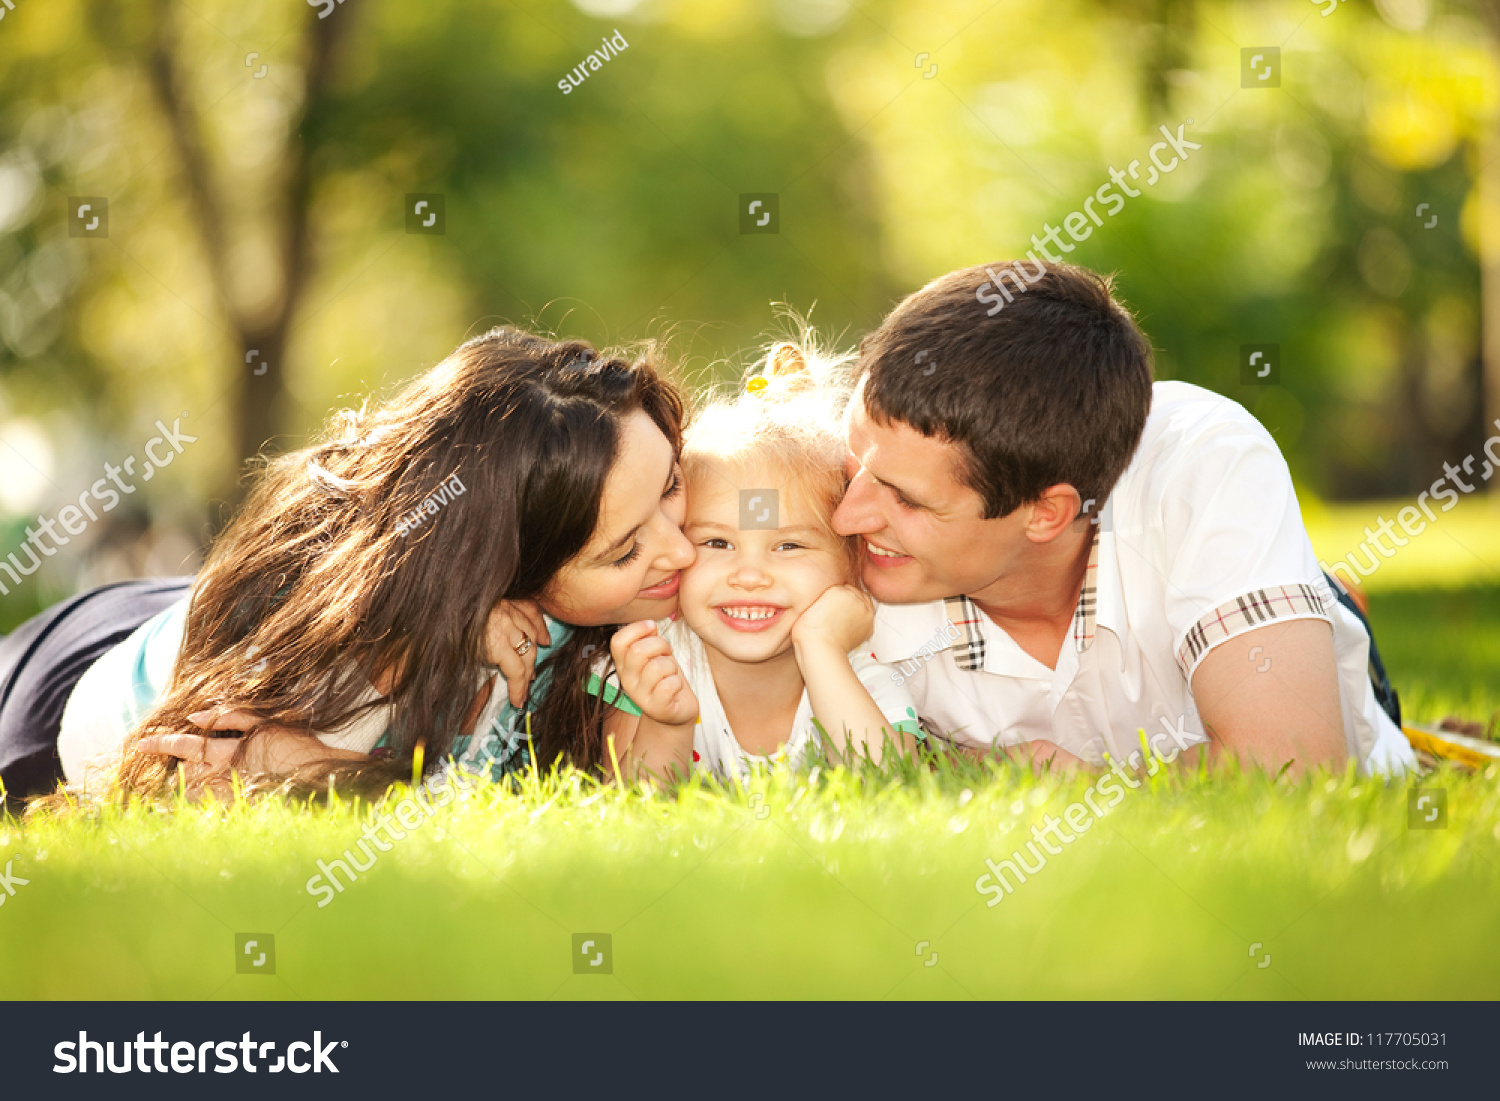 Happiness Harmony Family Life Happy Family Stock Photo